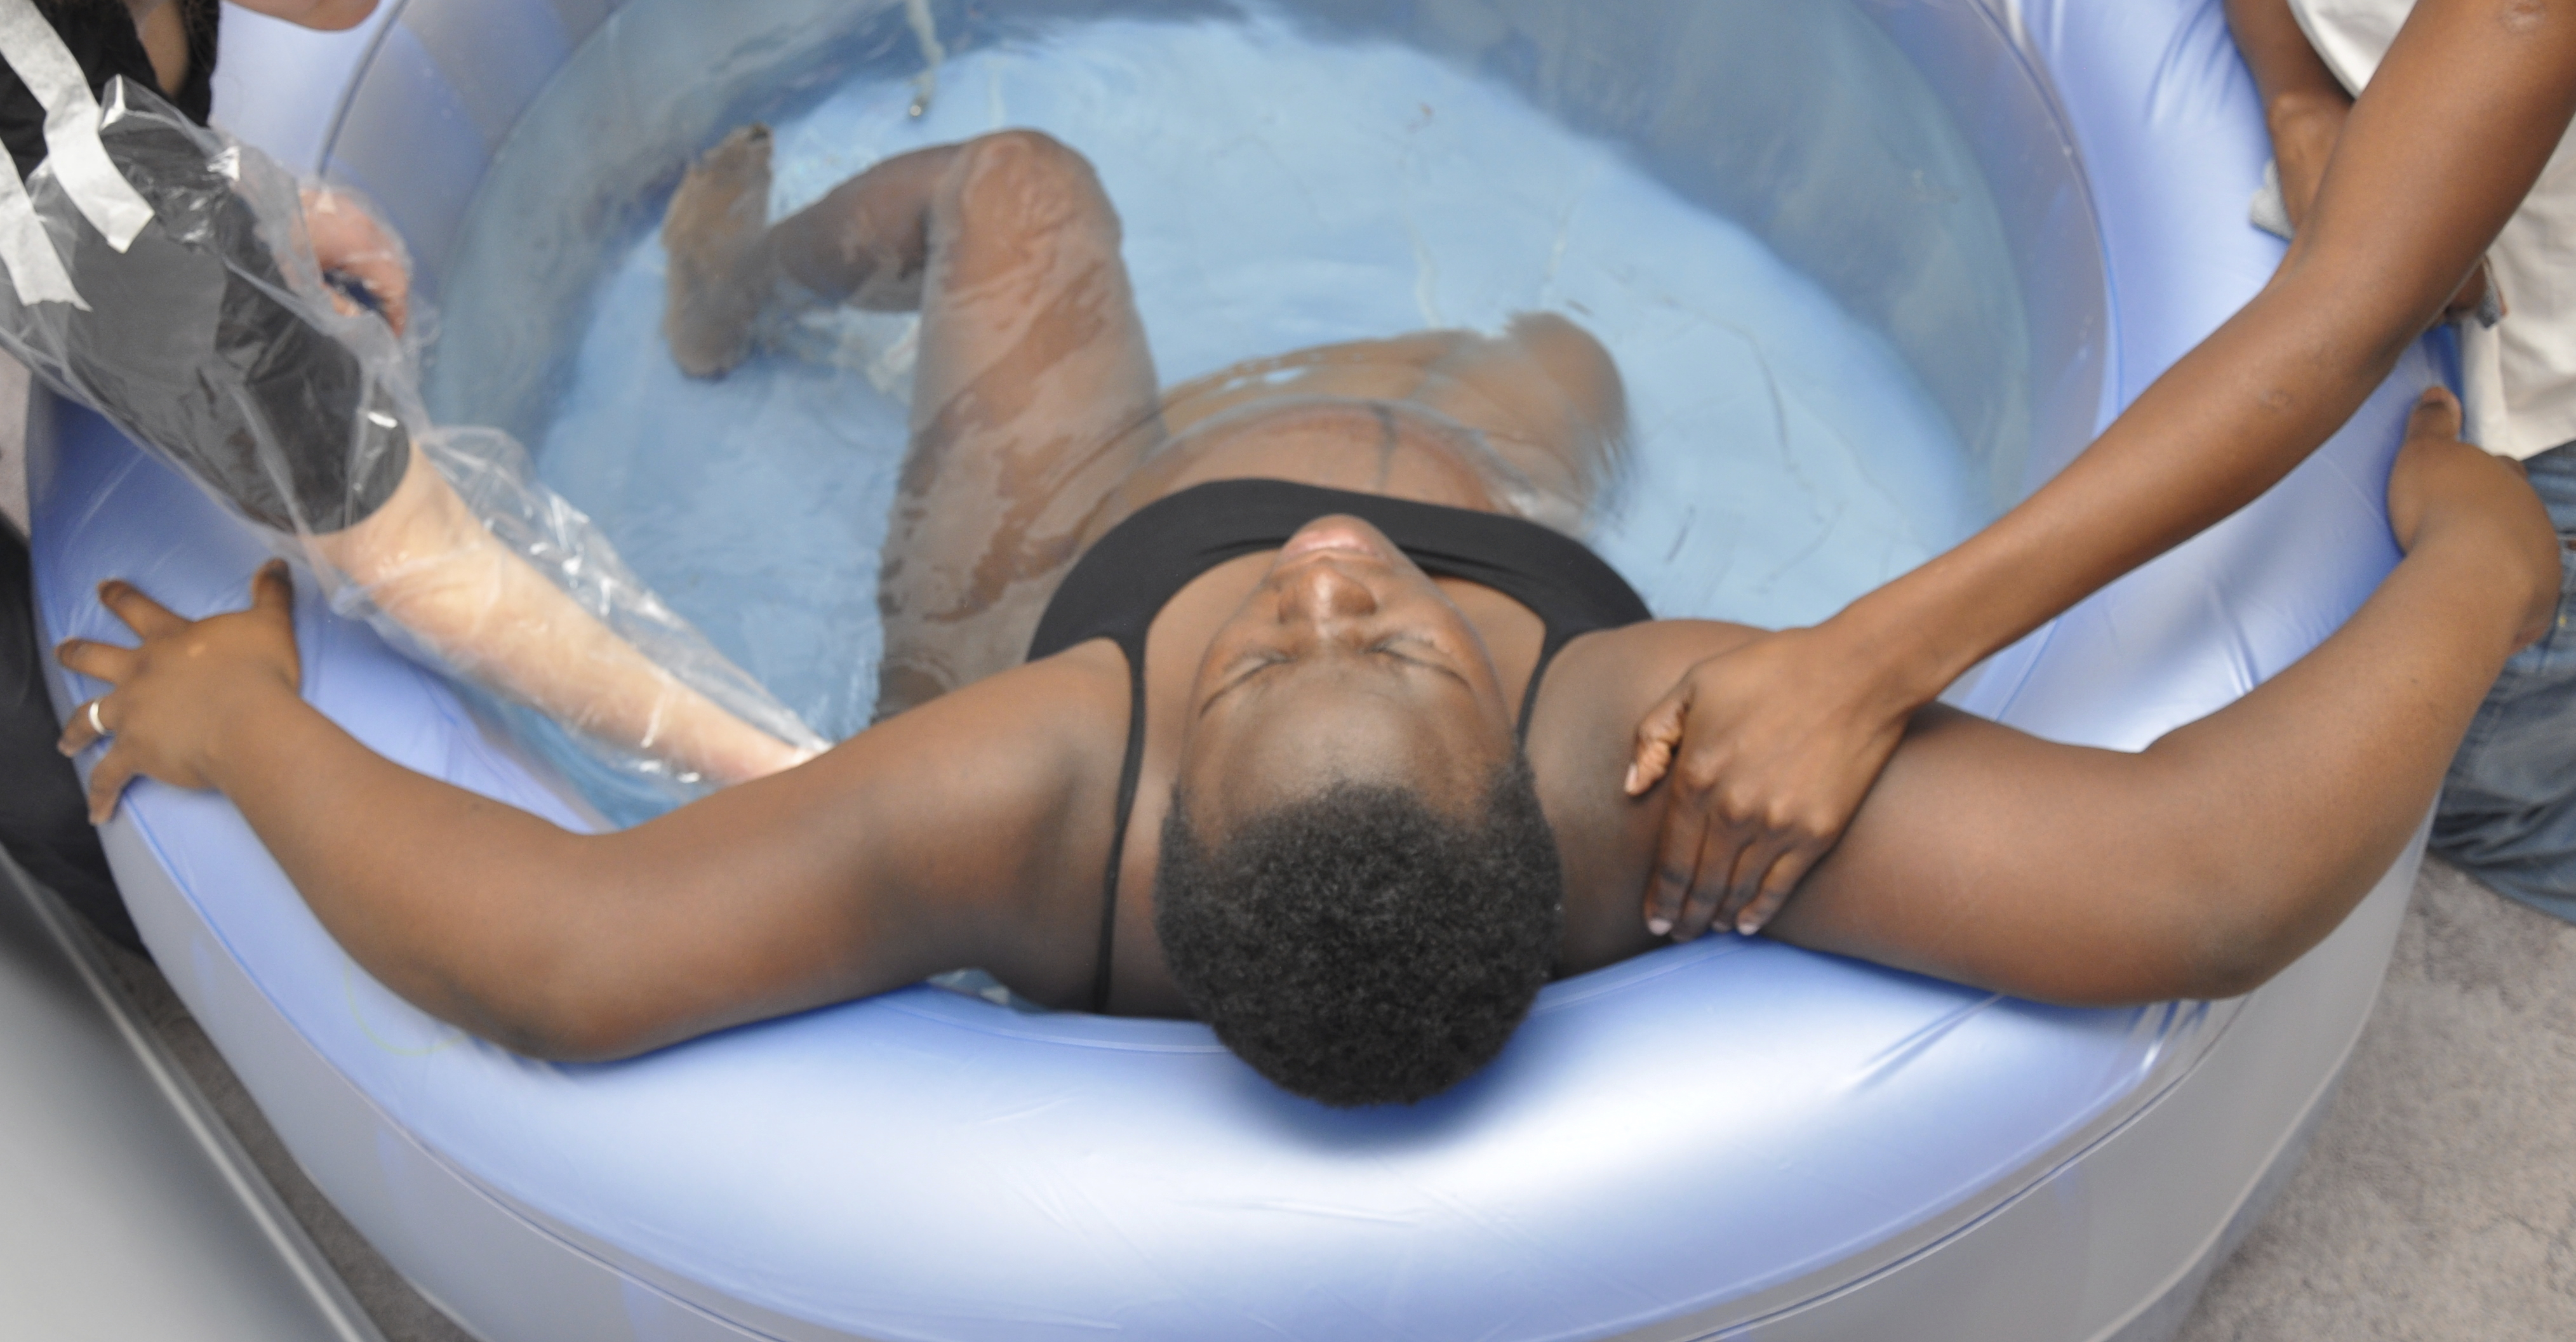 Bathing during pregnancy - the pros and cons